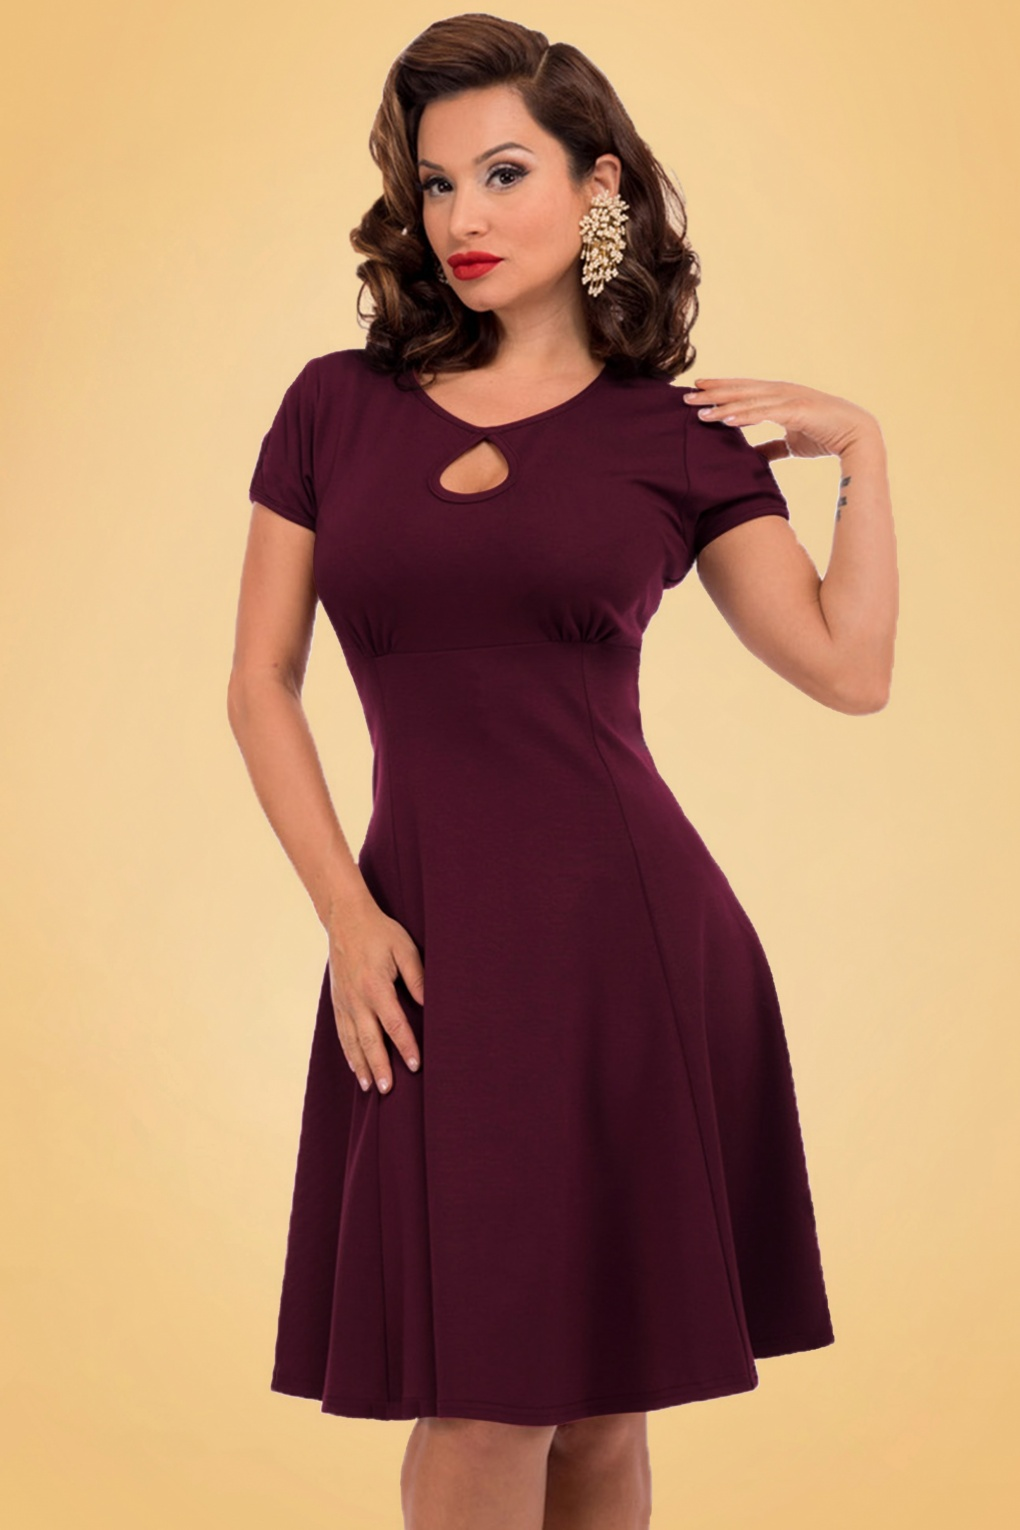 Dress Me Up Take Me Out: 50s Charm Me Keyhole Dress In Aubergine